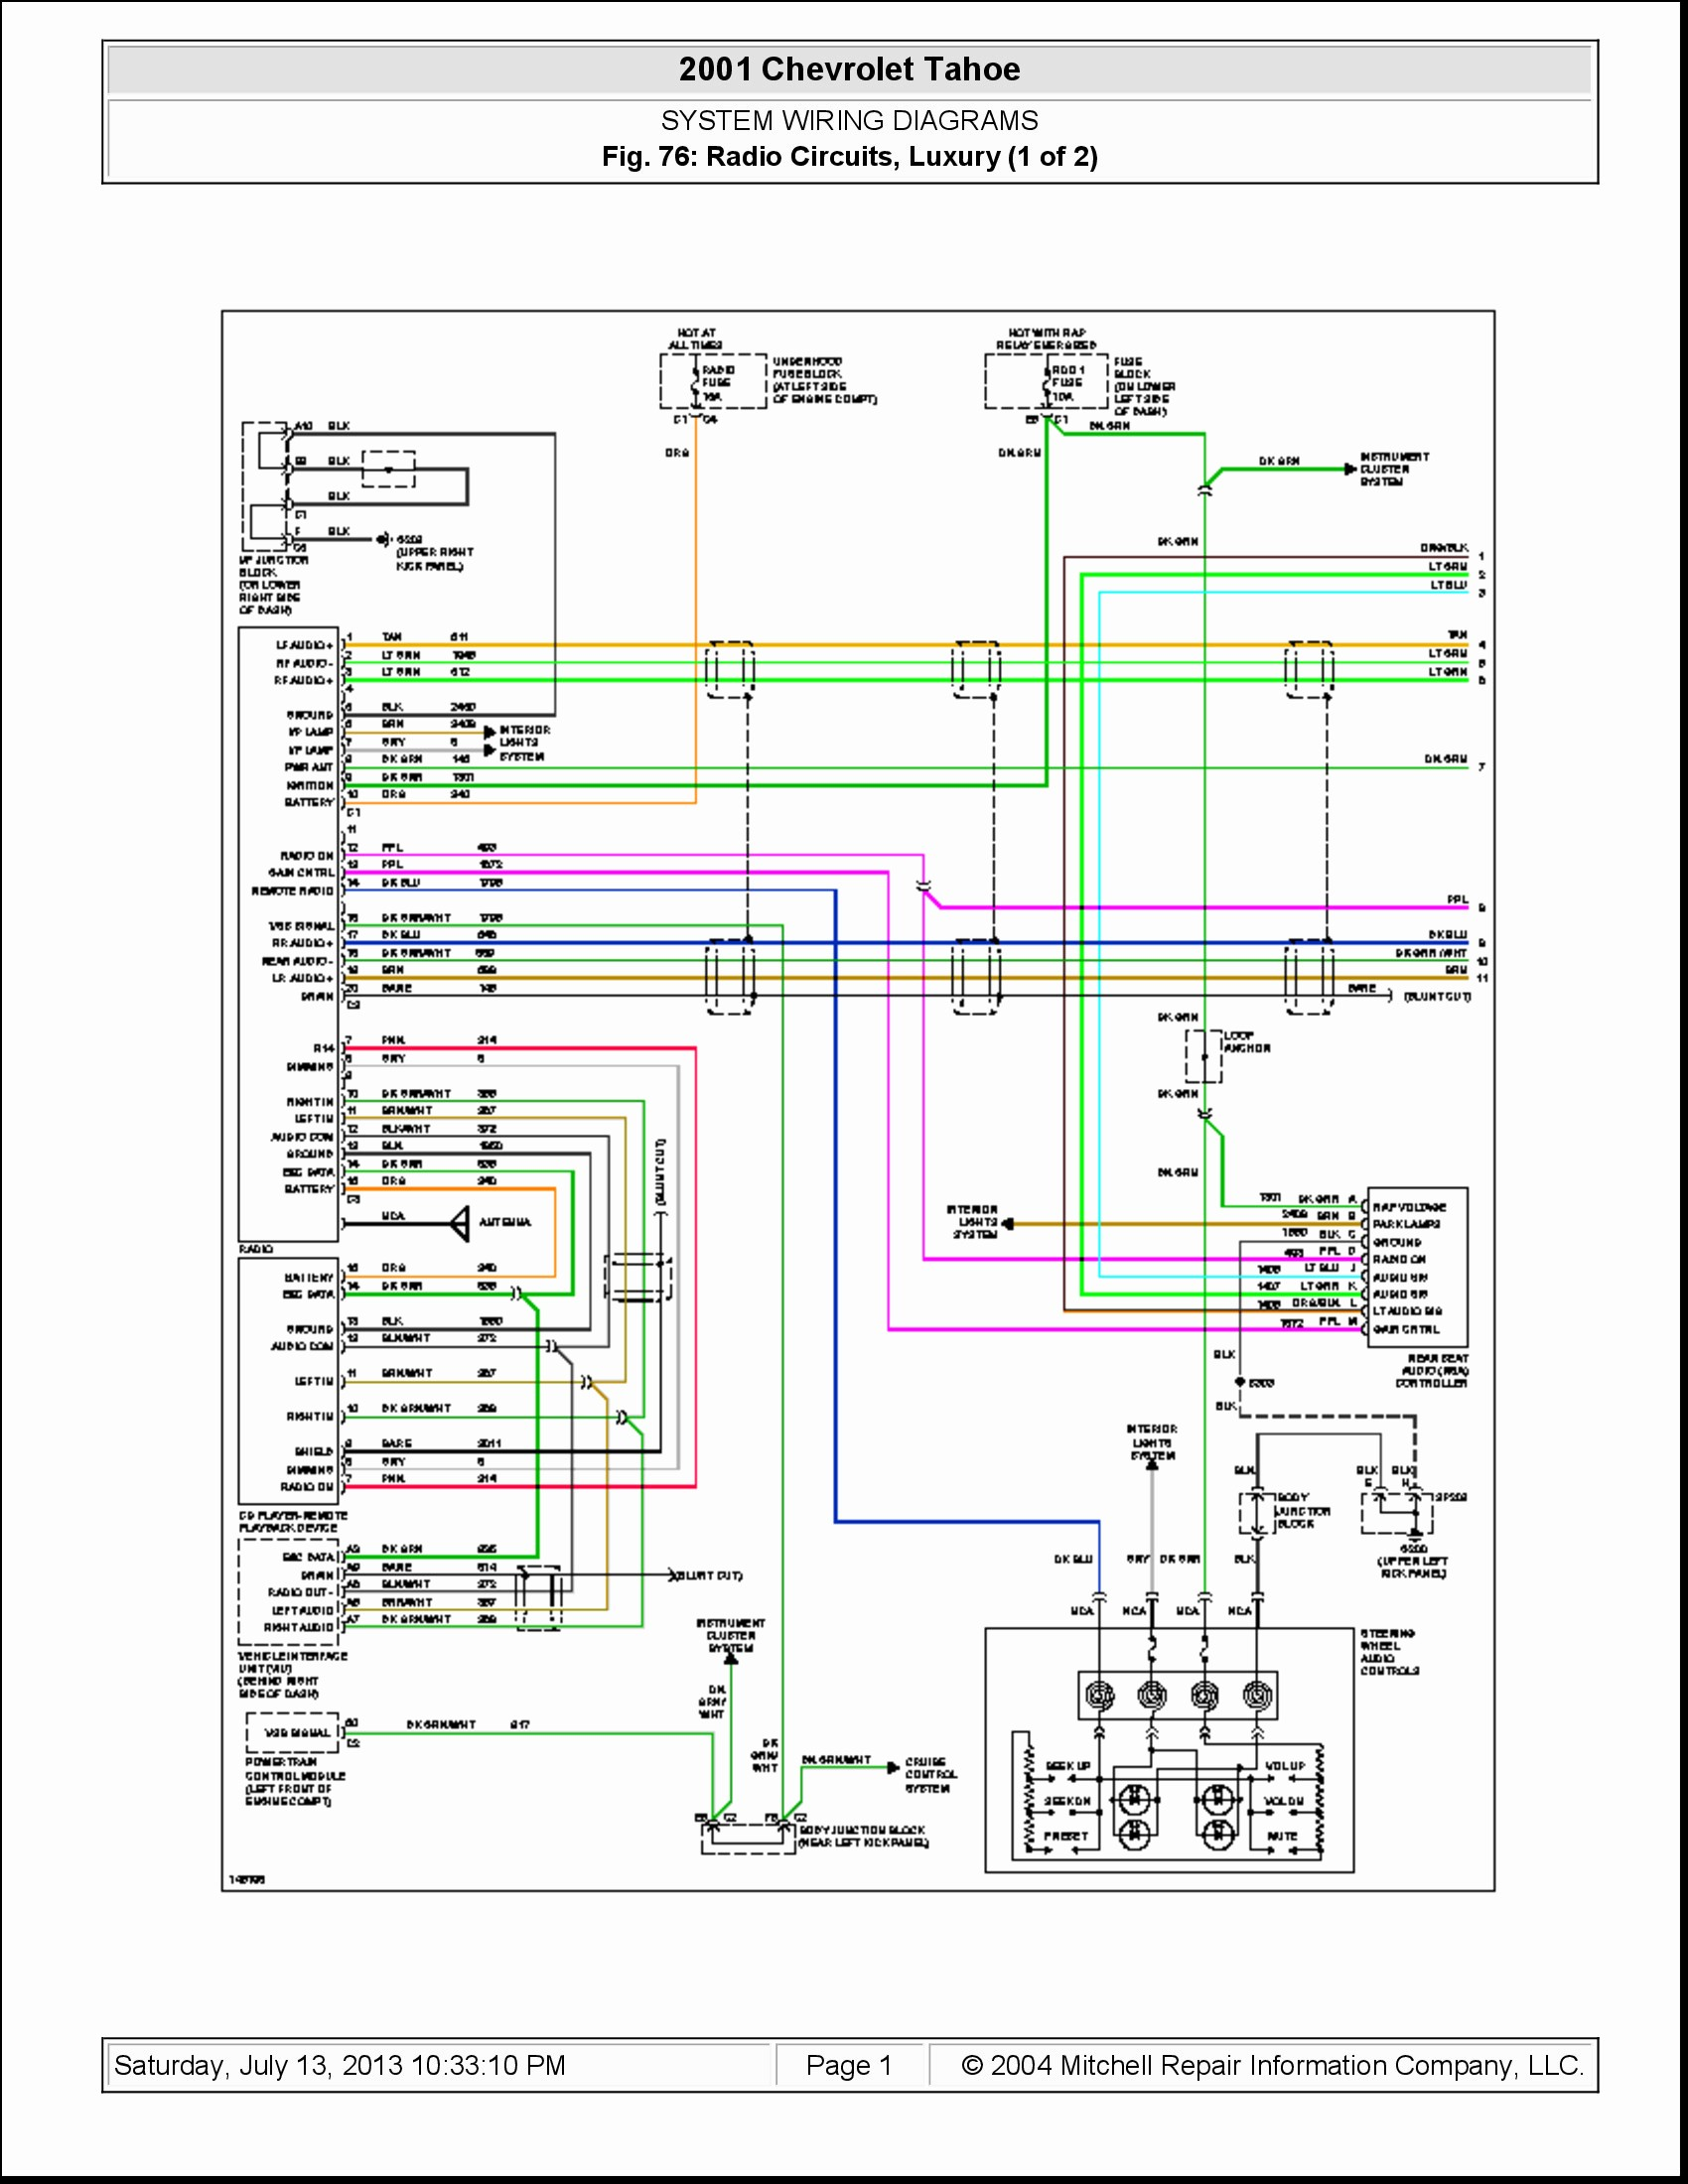 hight resolution of 2005 chevy silverado brake light wiring diagram new 2001 blazer radio wiring diagram 2002 chevy trailblazer